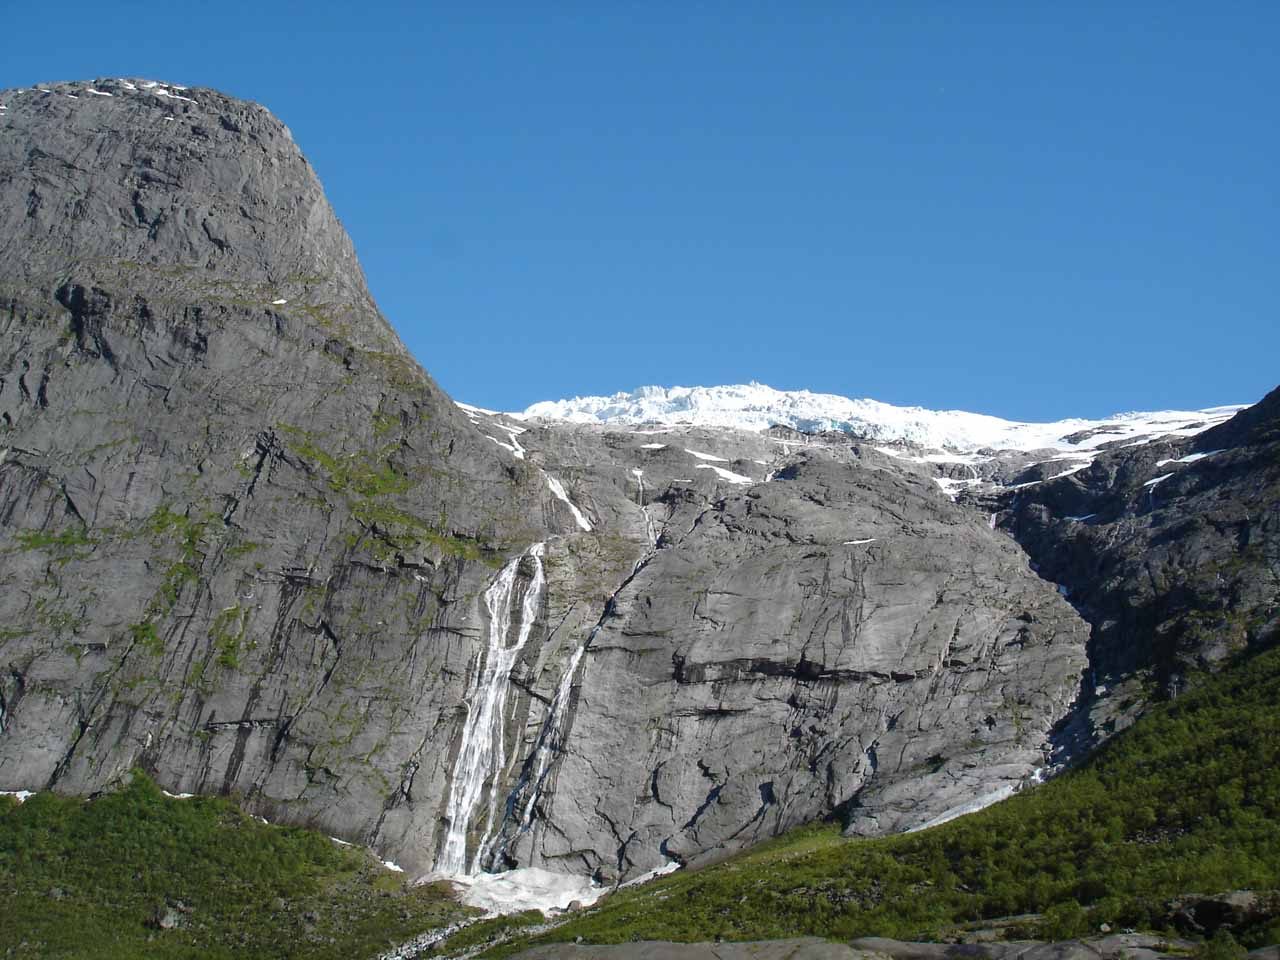 Some waterfall we saw on the way to the glacier